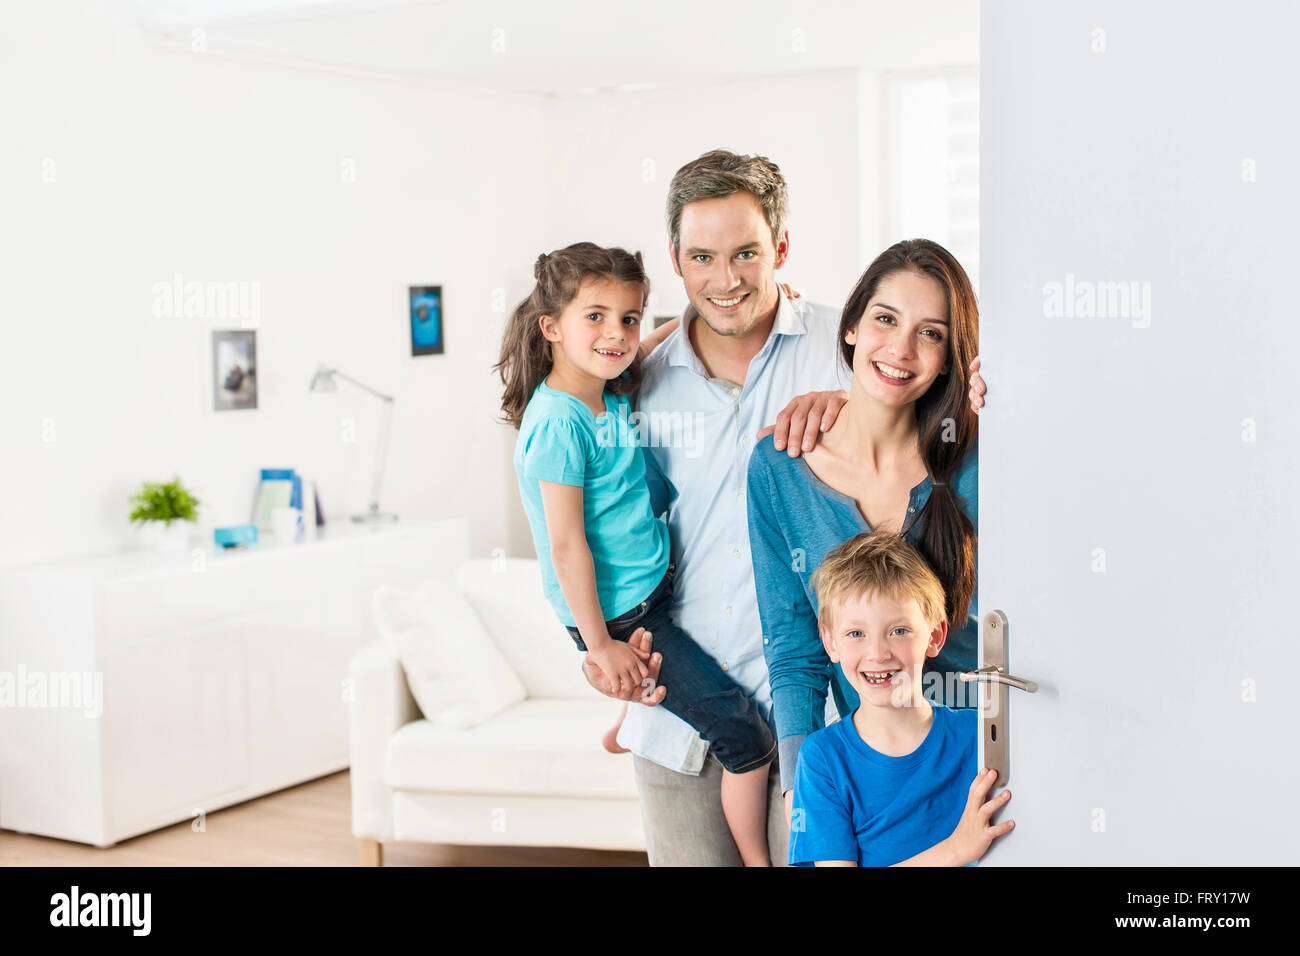 Family standing at front door to invite people at home  sc 1 st  Alamy & Family standing at front door to invite people at home Stock Photo ...